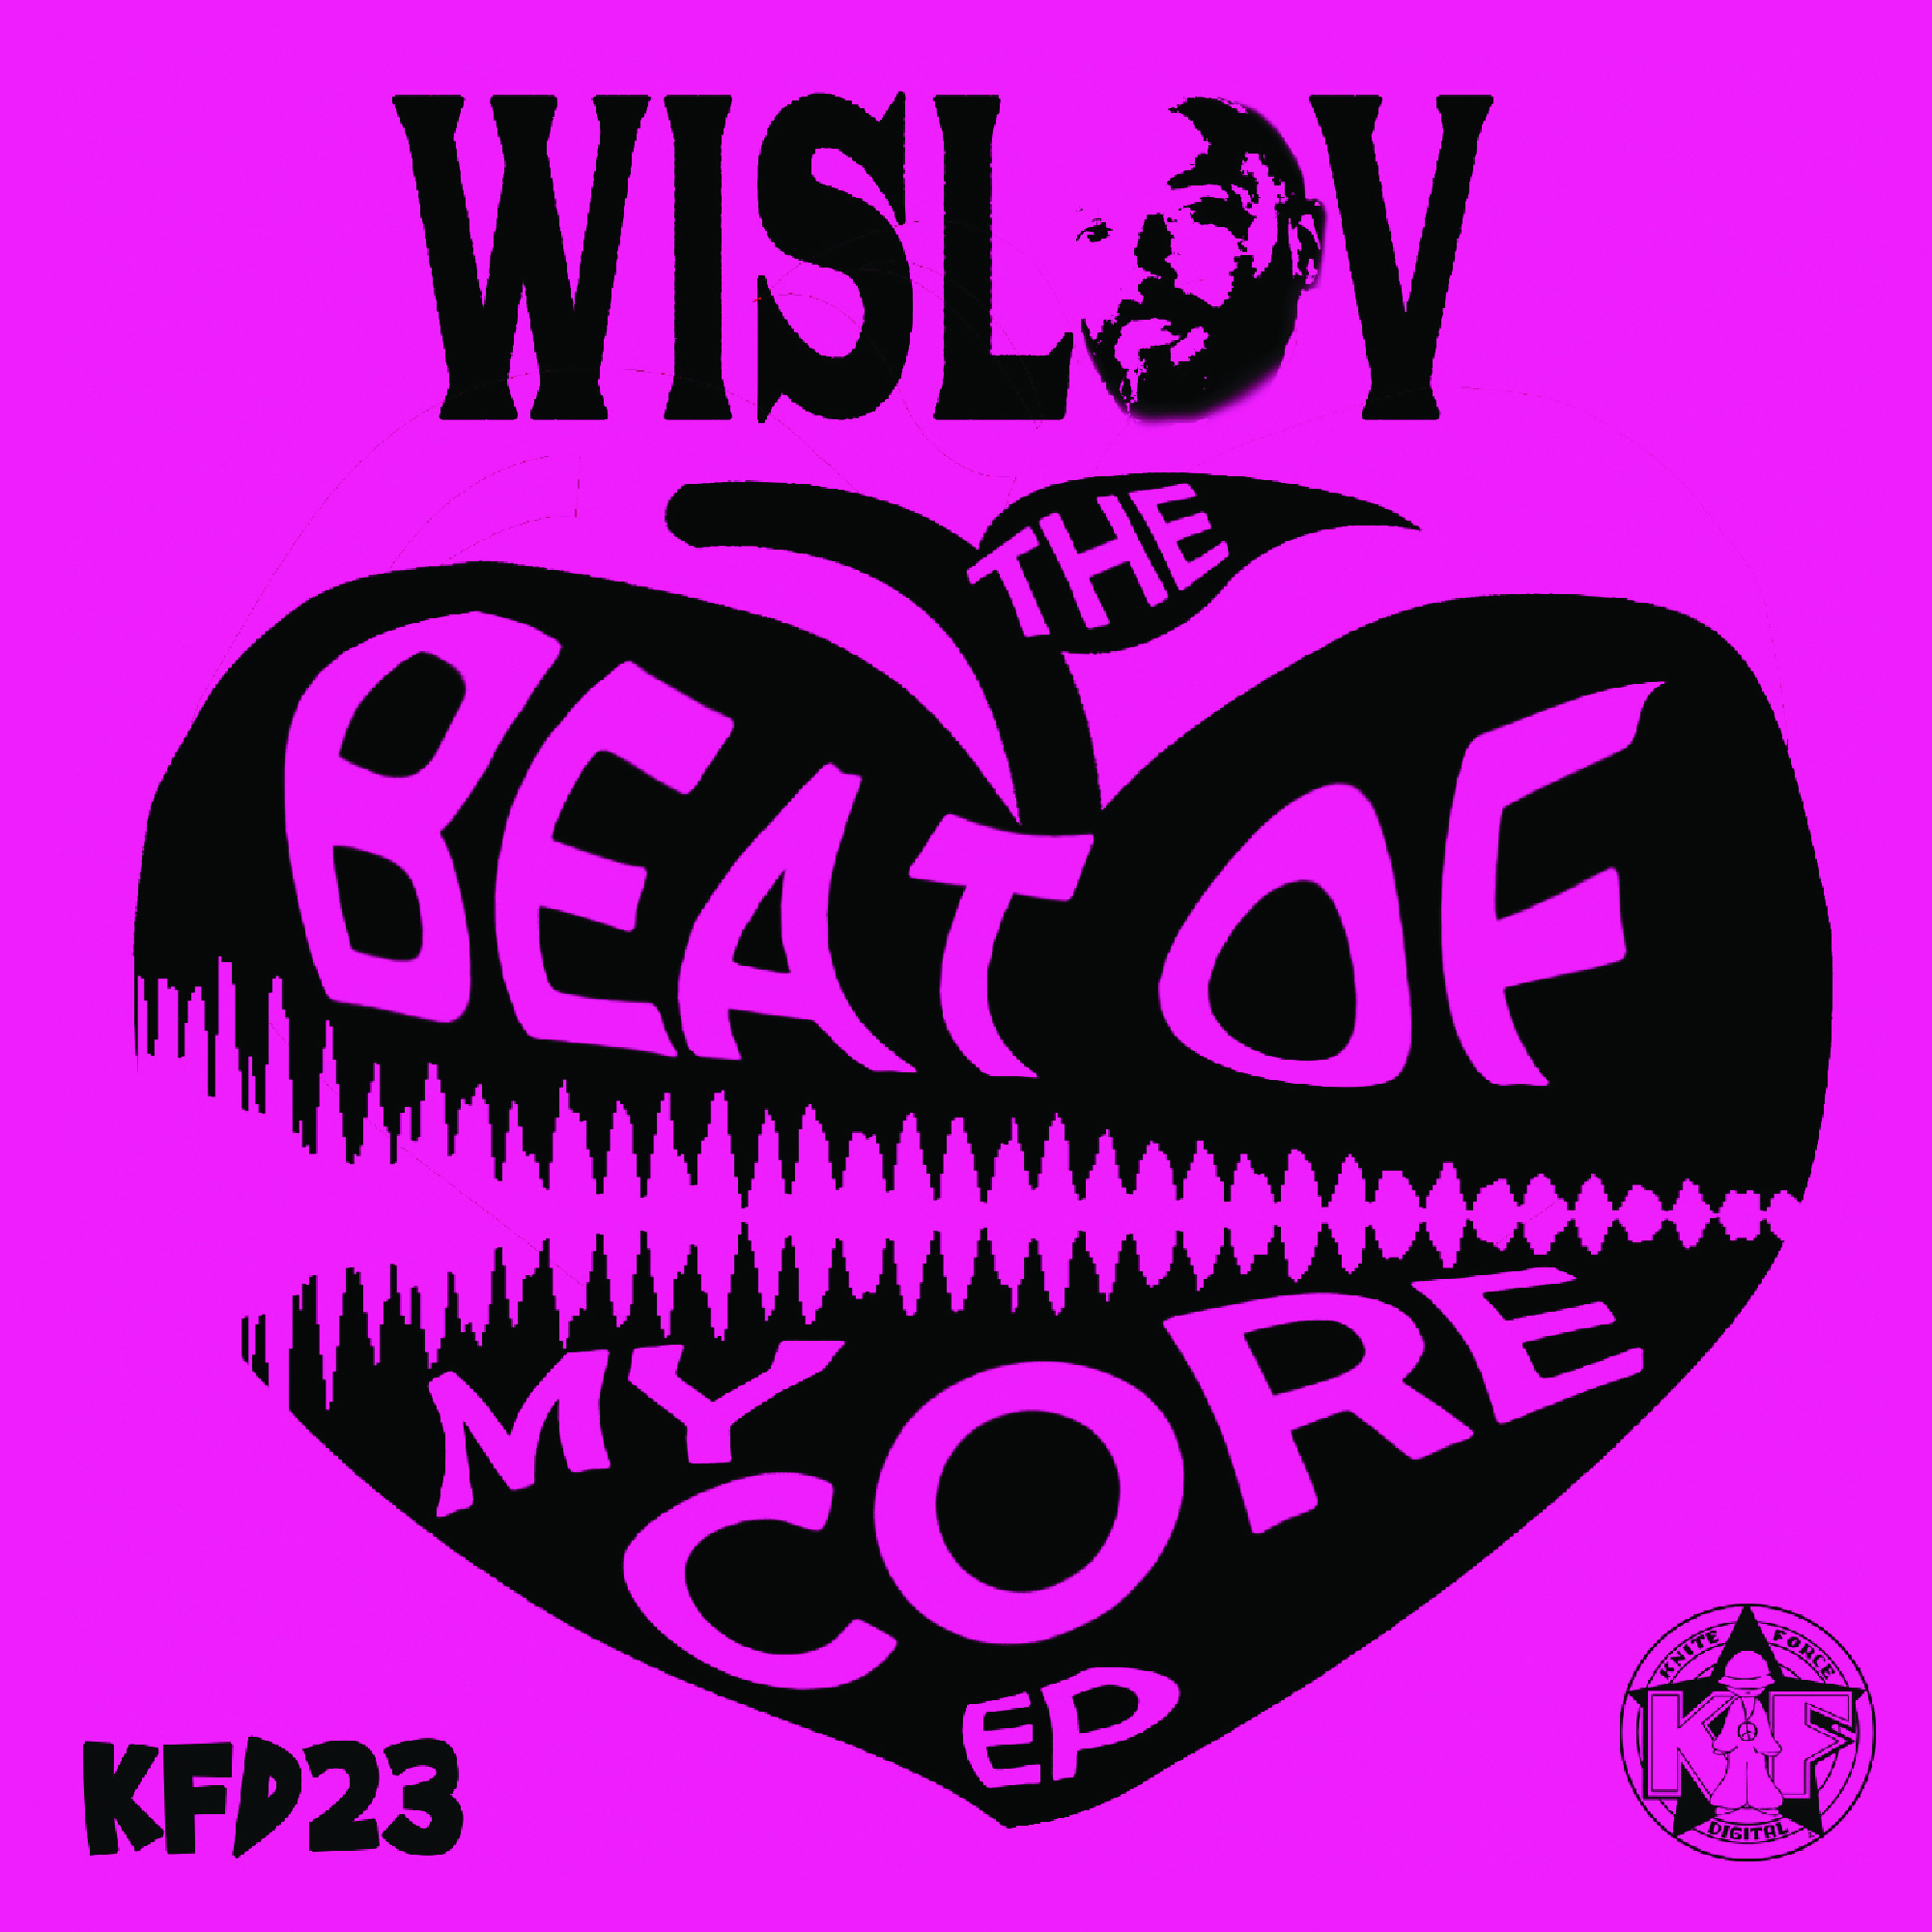 [KFD023] Wislov - The Beat Of My COre EP (Digital Only)